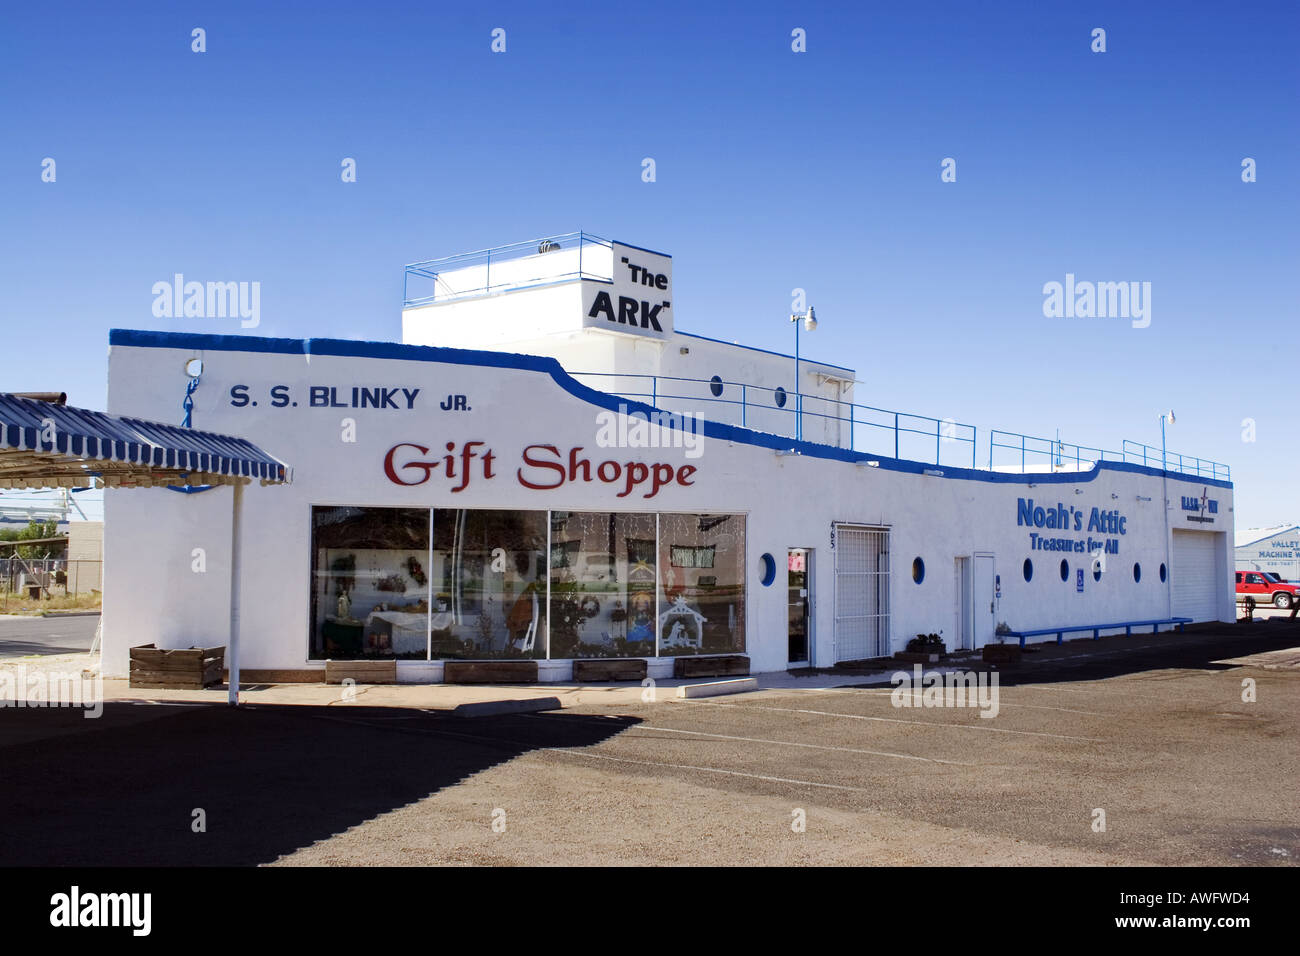 noahs attic the ark gift shop building shaped like a ship in casa stock photo royalty free. Black Bedroom Furniture Sets. Home Design Ideas